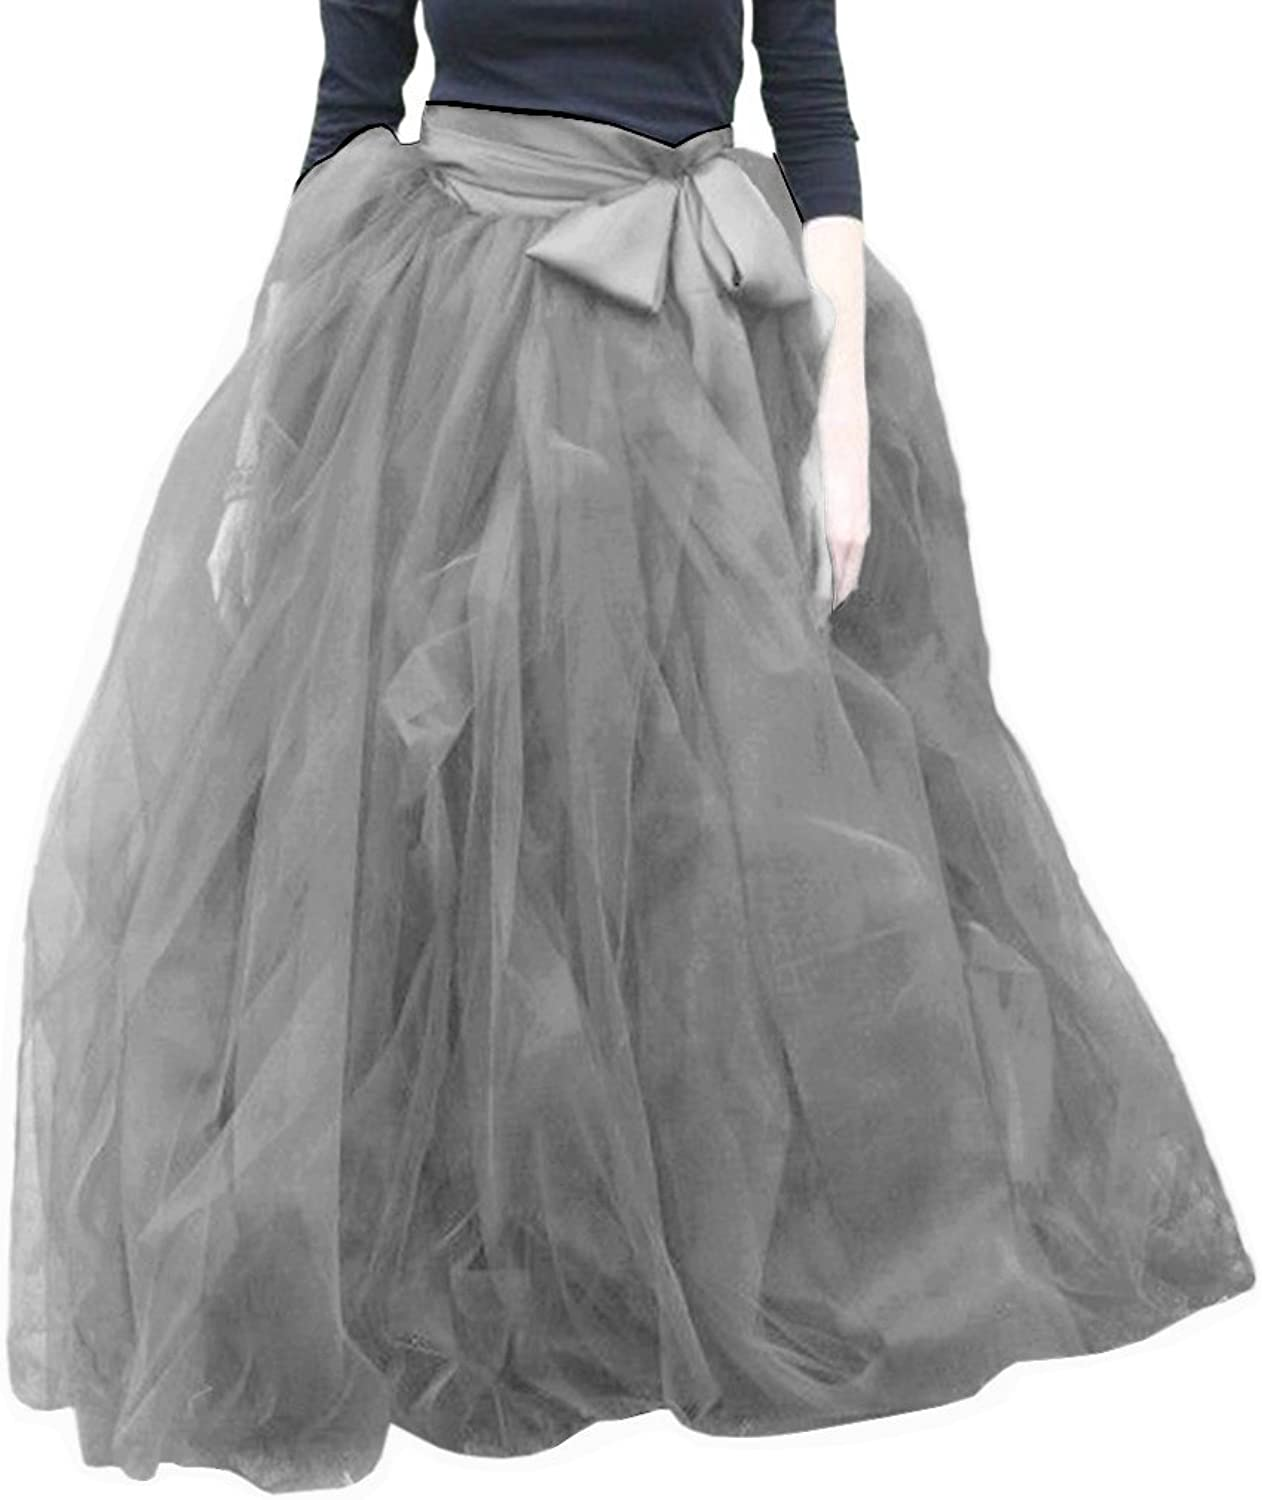 EllieHouse Womens Long Tutu Tulle Skirt PC27